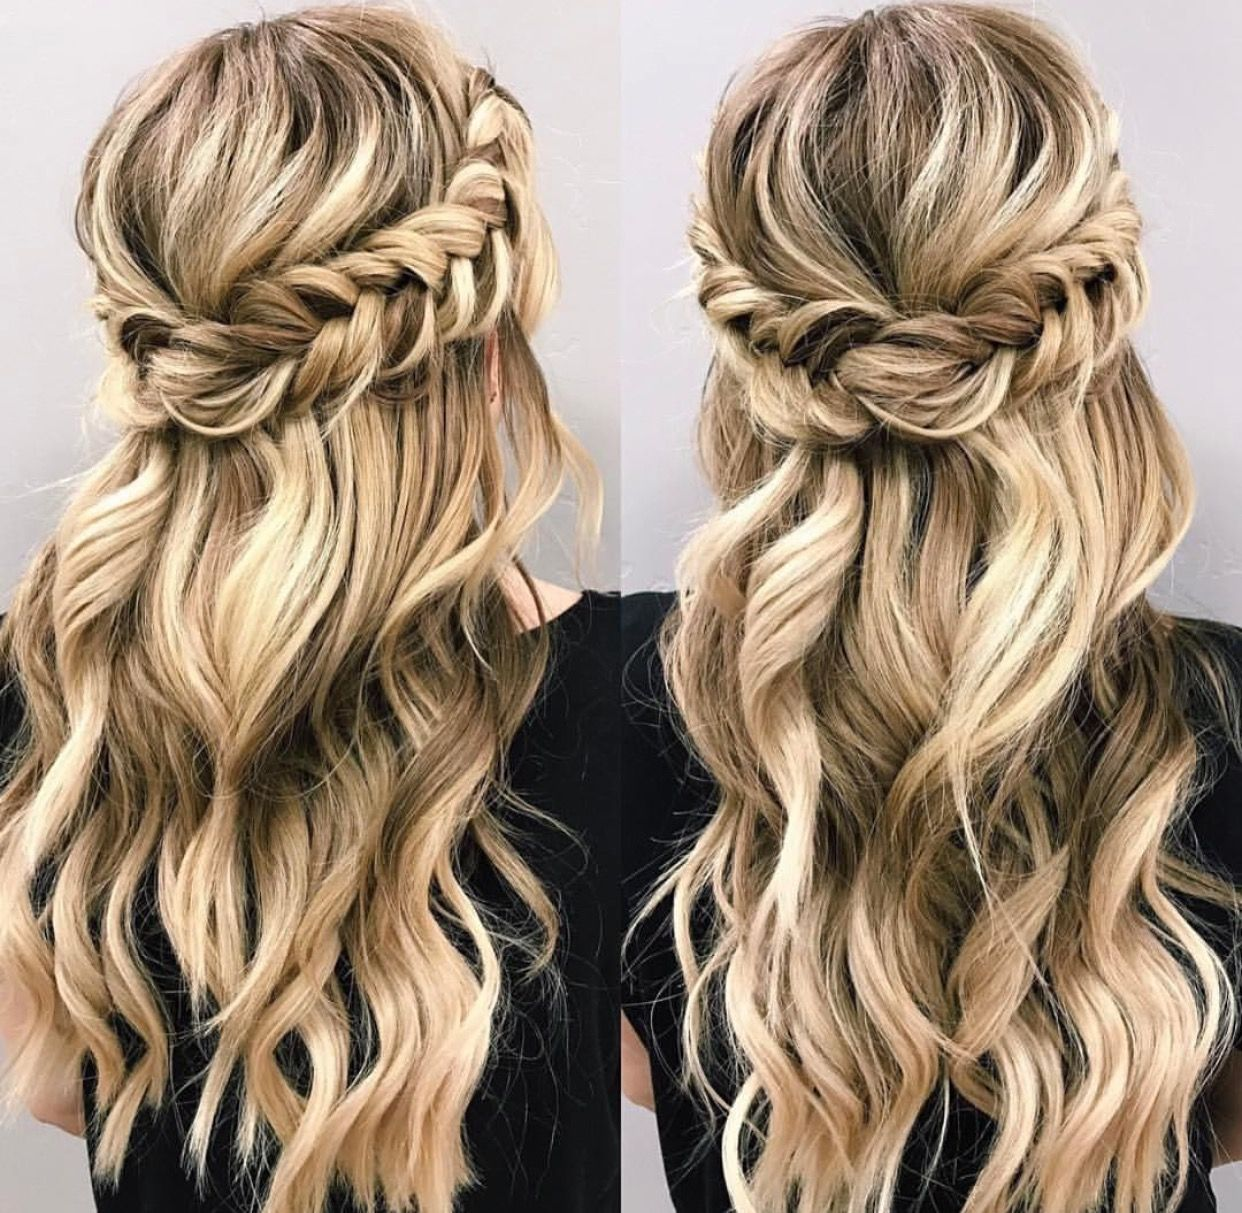 Pin by rachel pauly on hairstyles pinterest hair style prom and